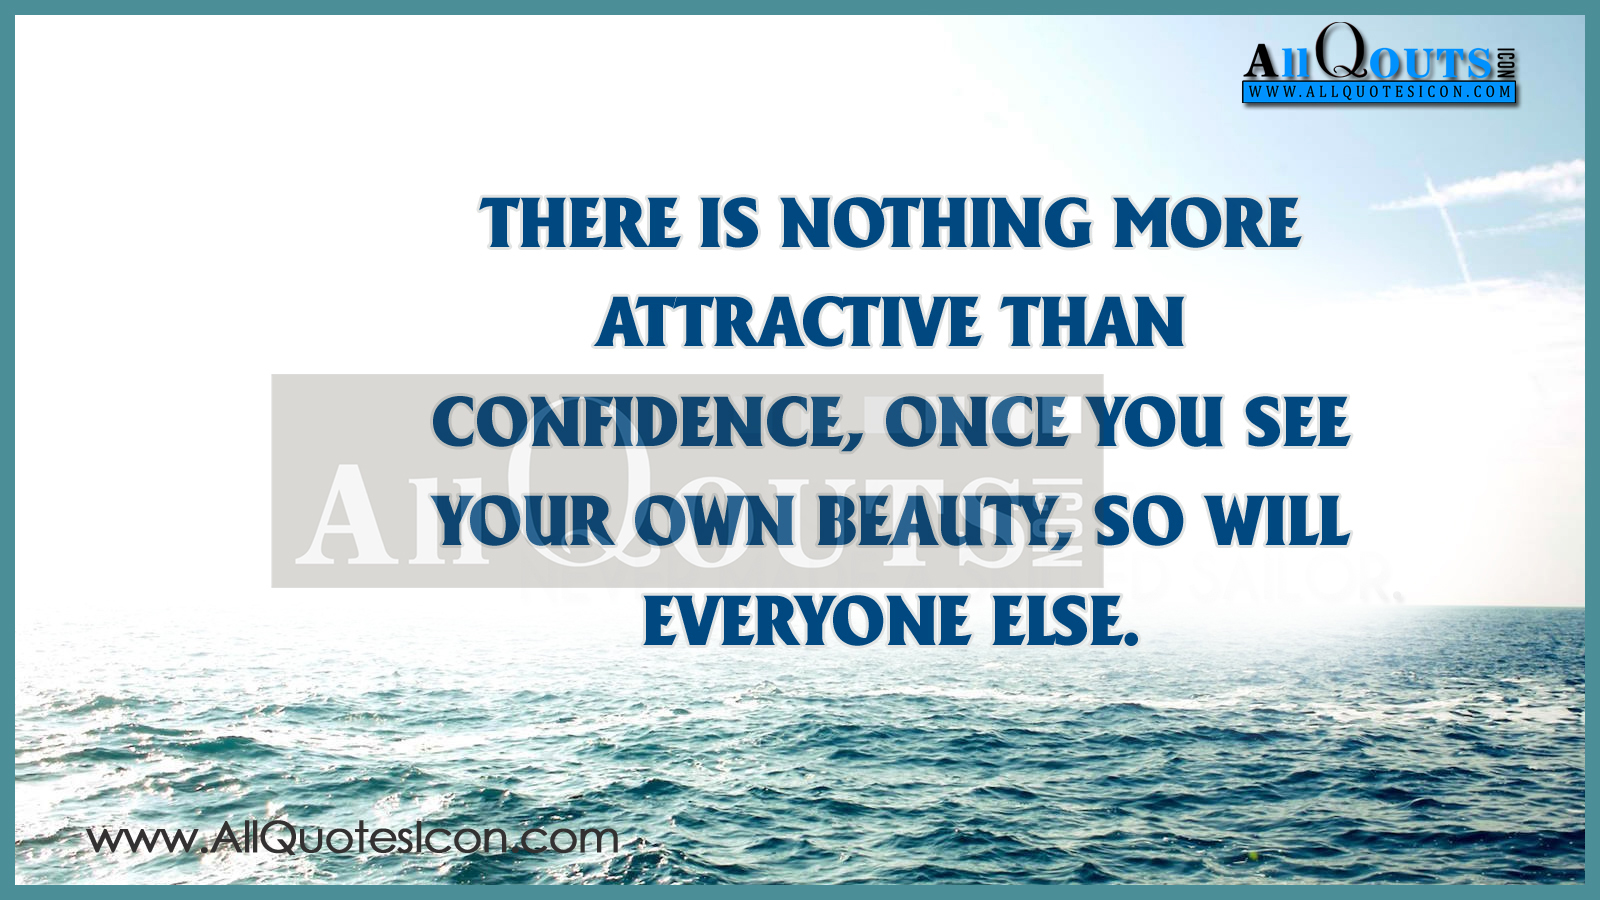 english confidence quotes and images nice wallpapers with